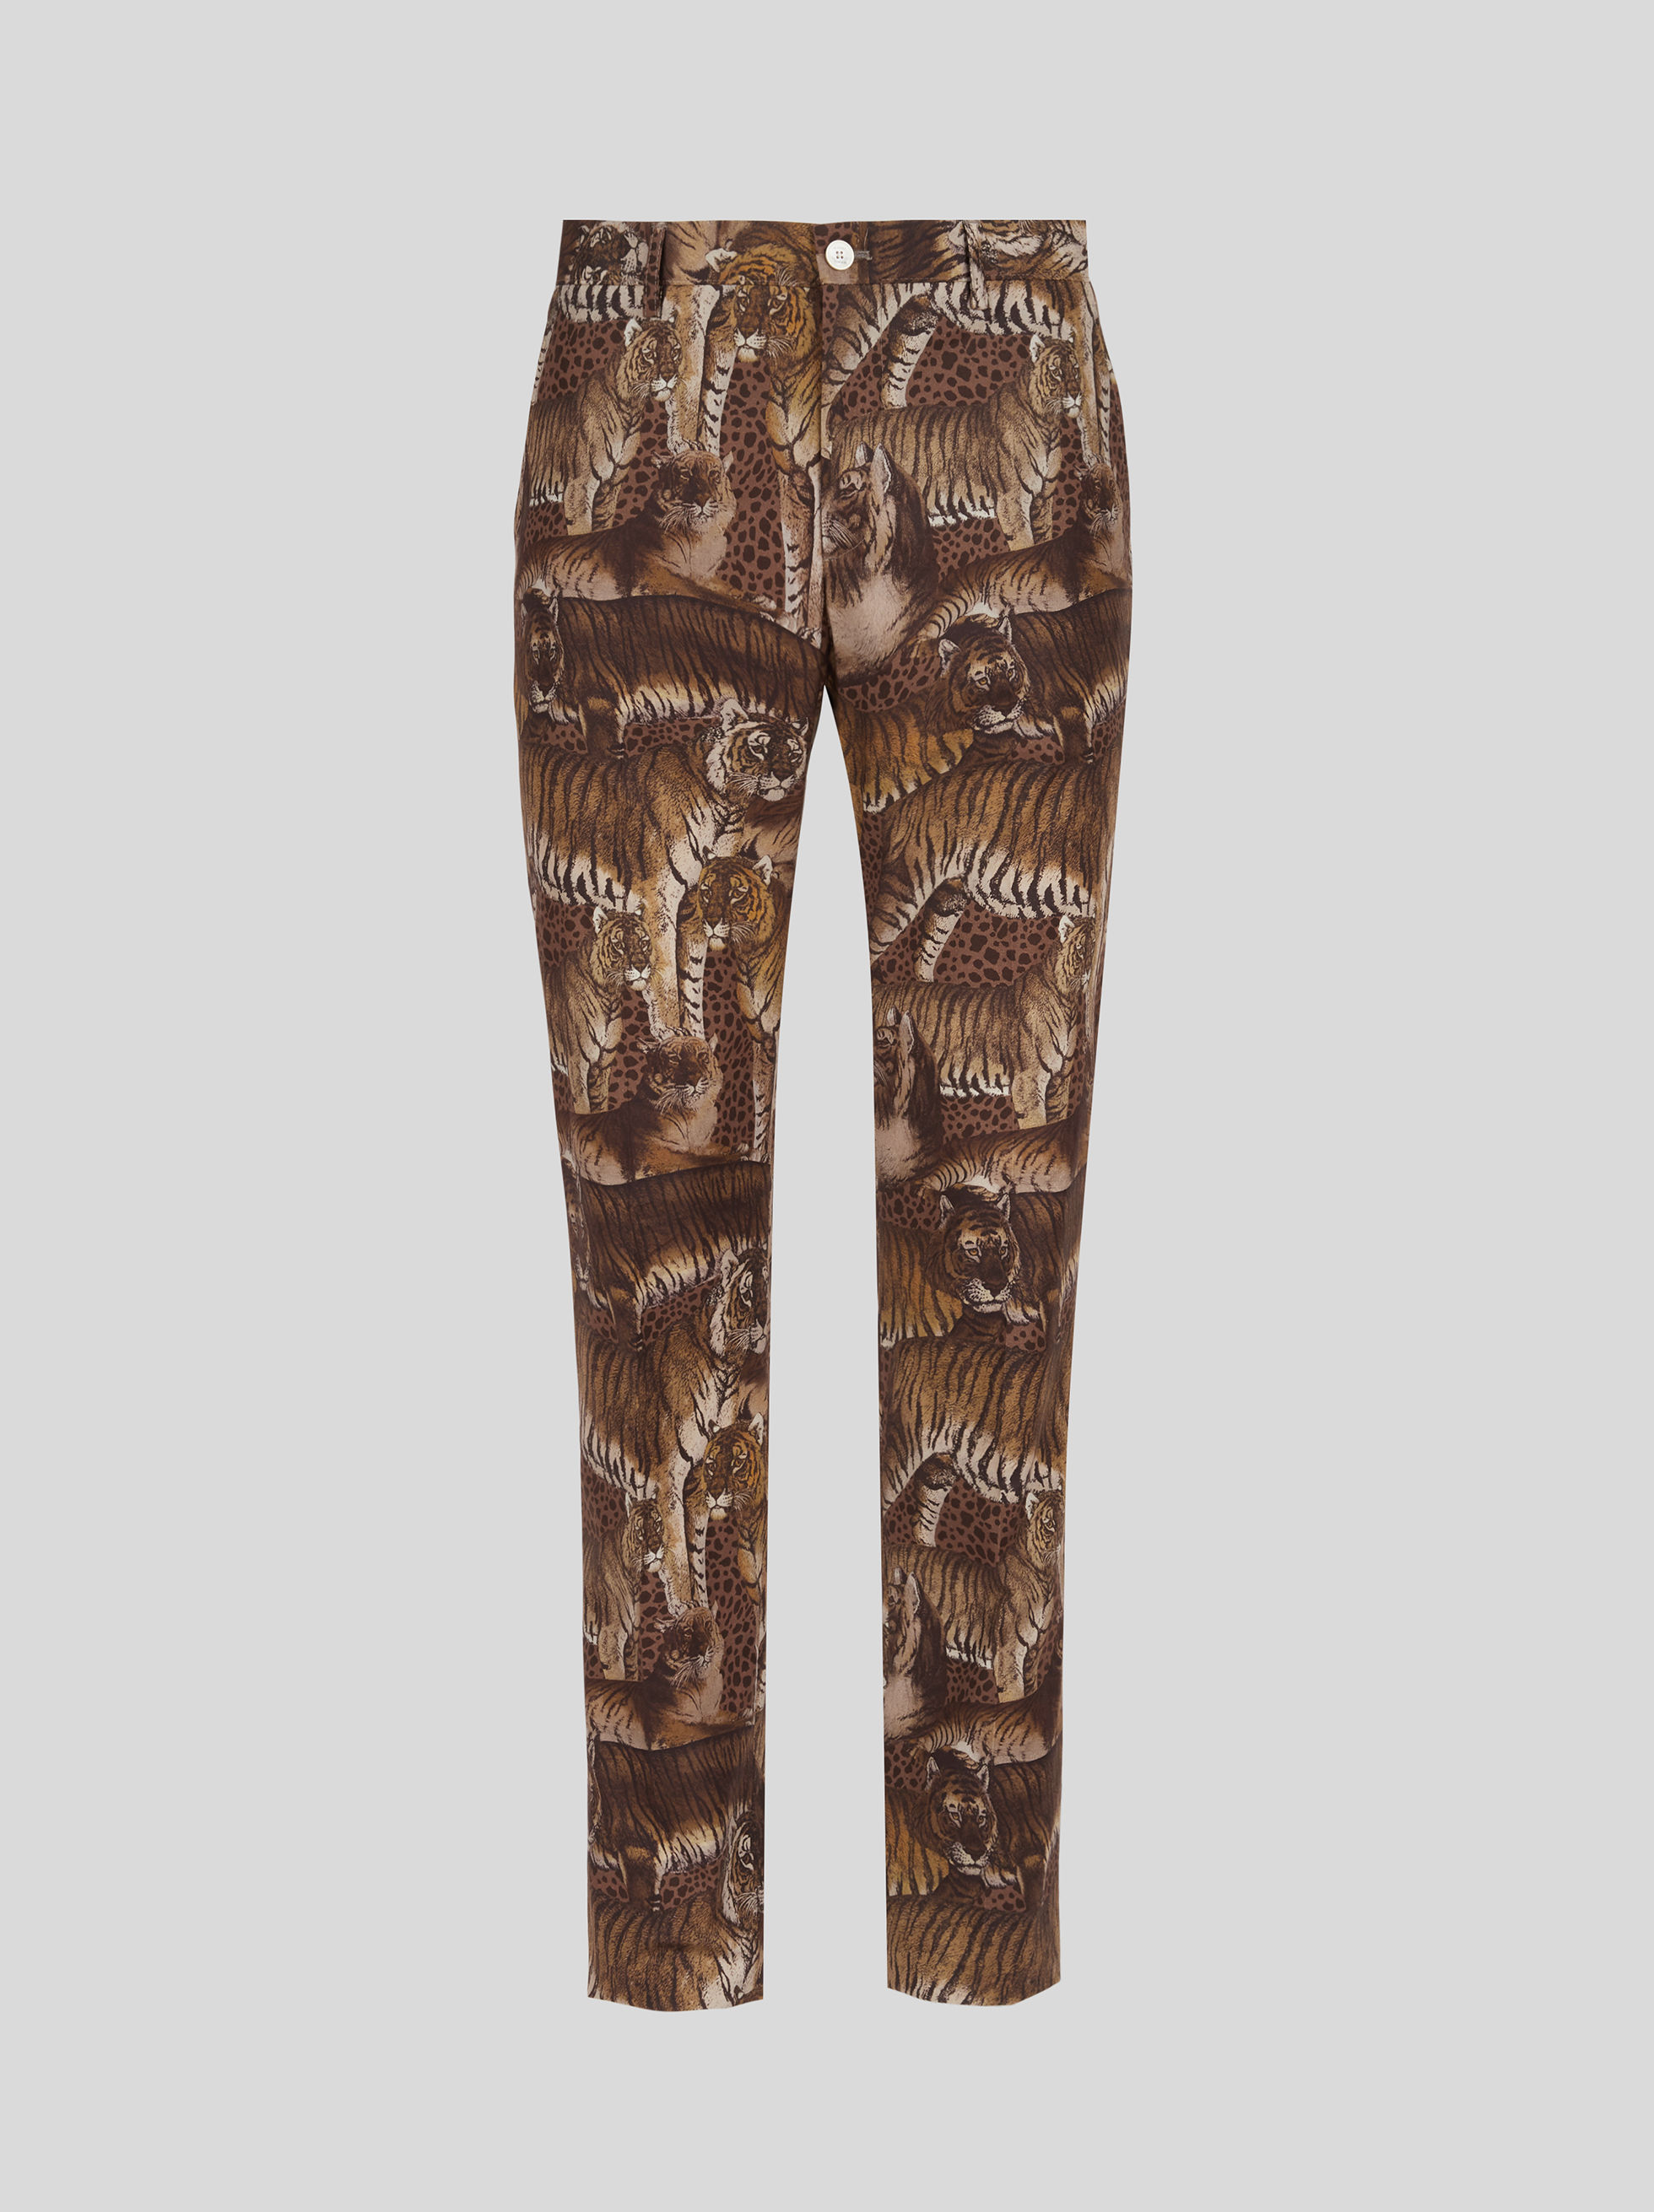 COTTON TROUSERS IN ANIMAL PRINT